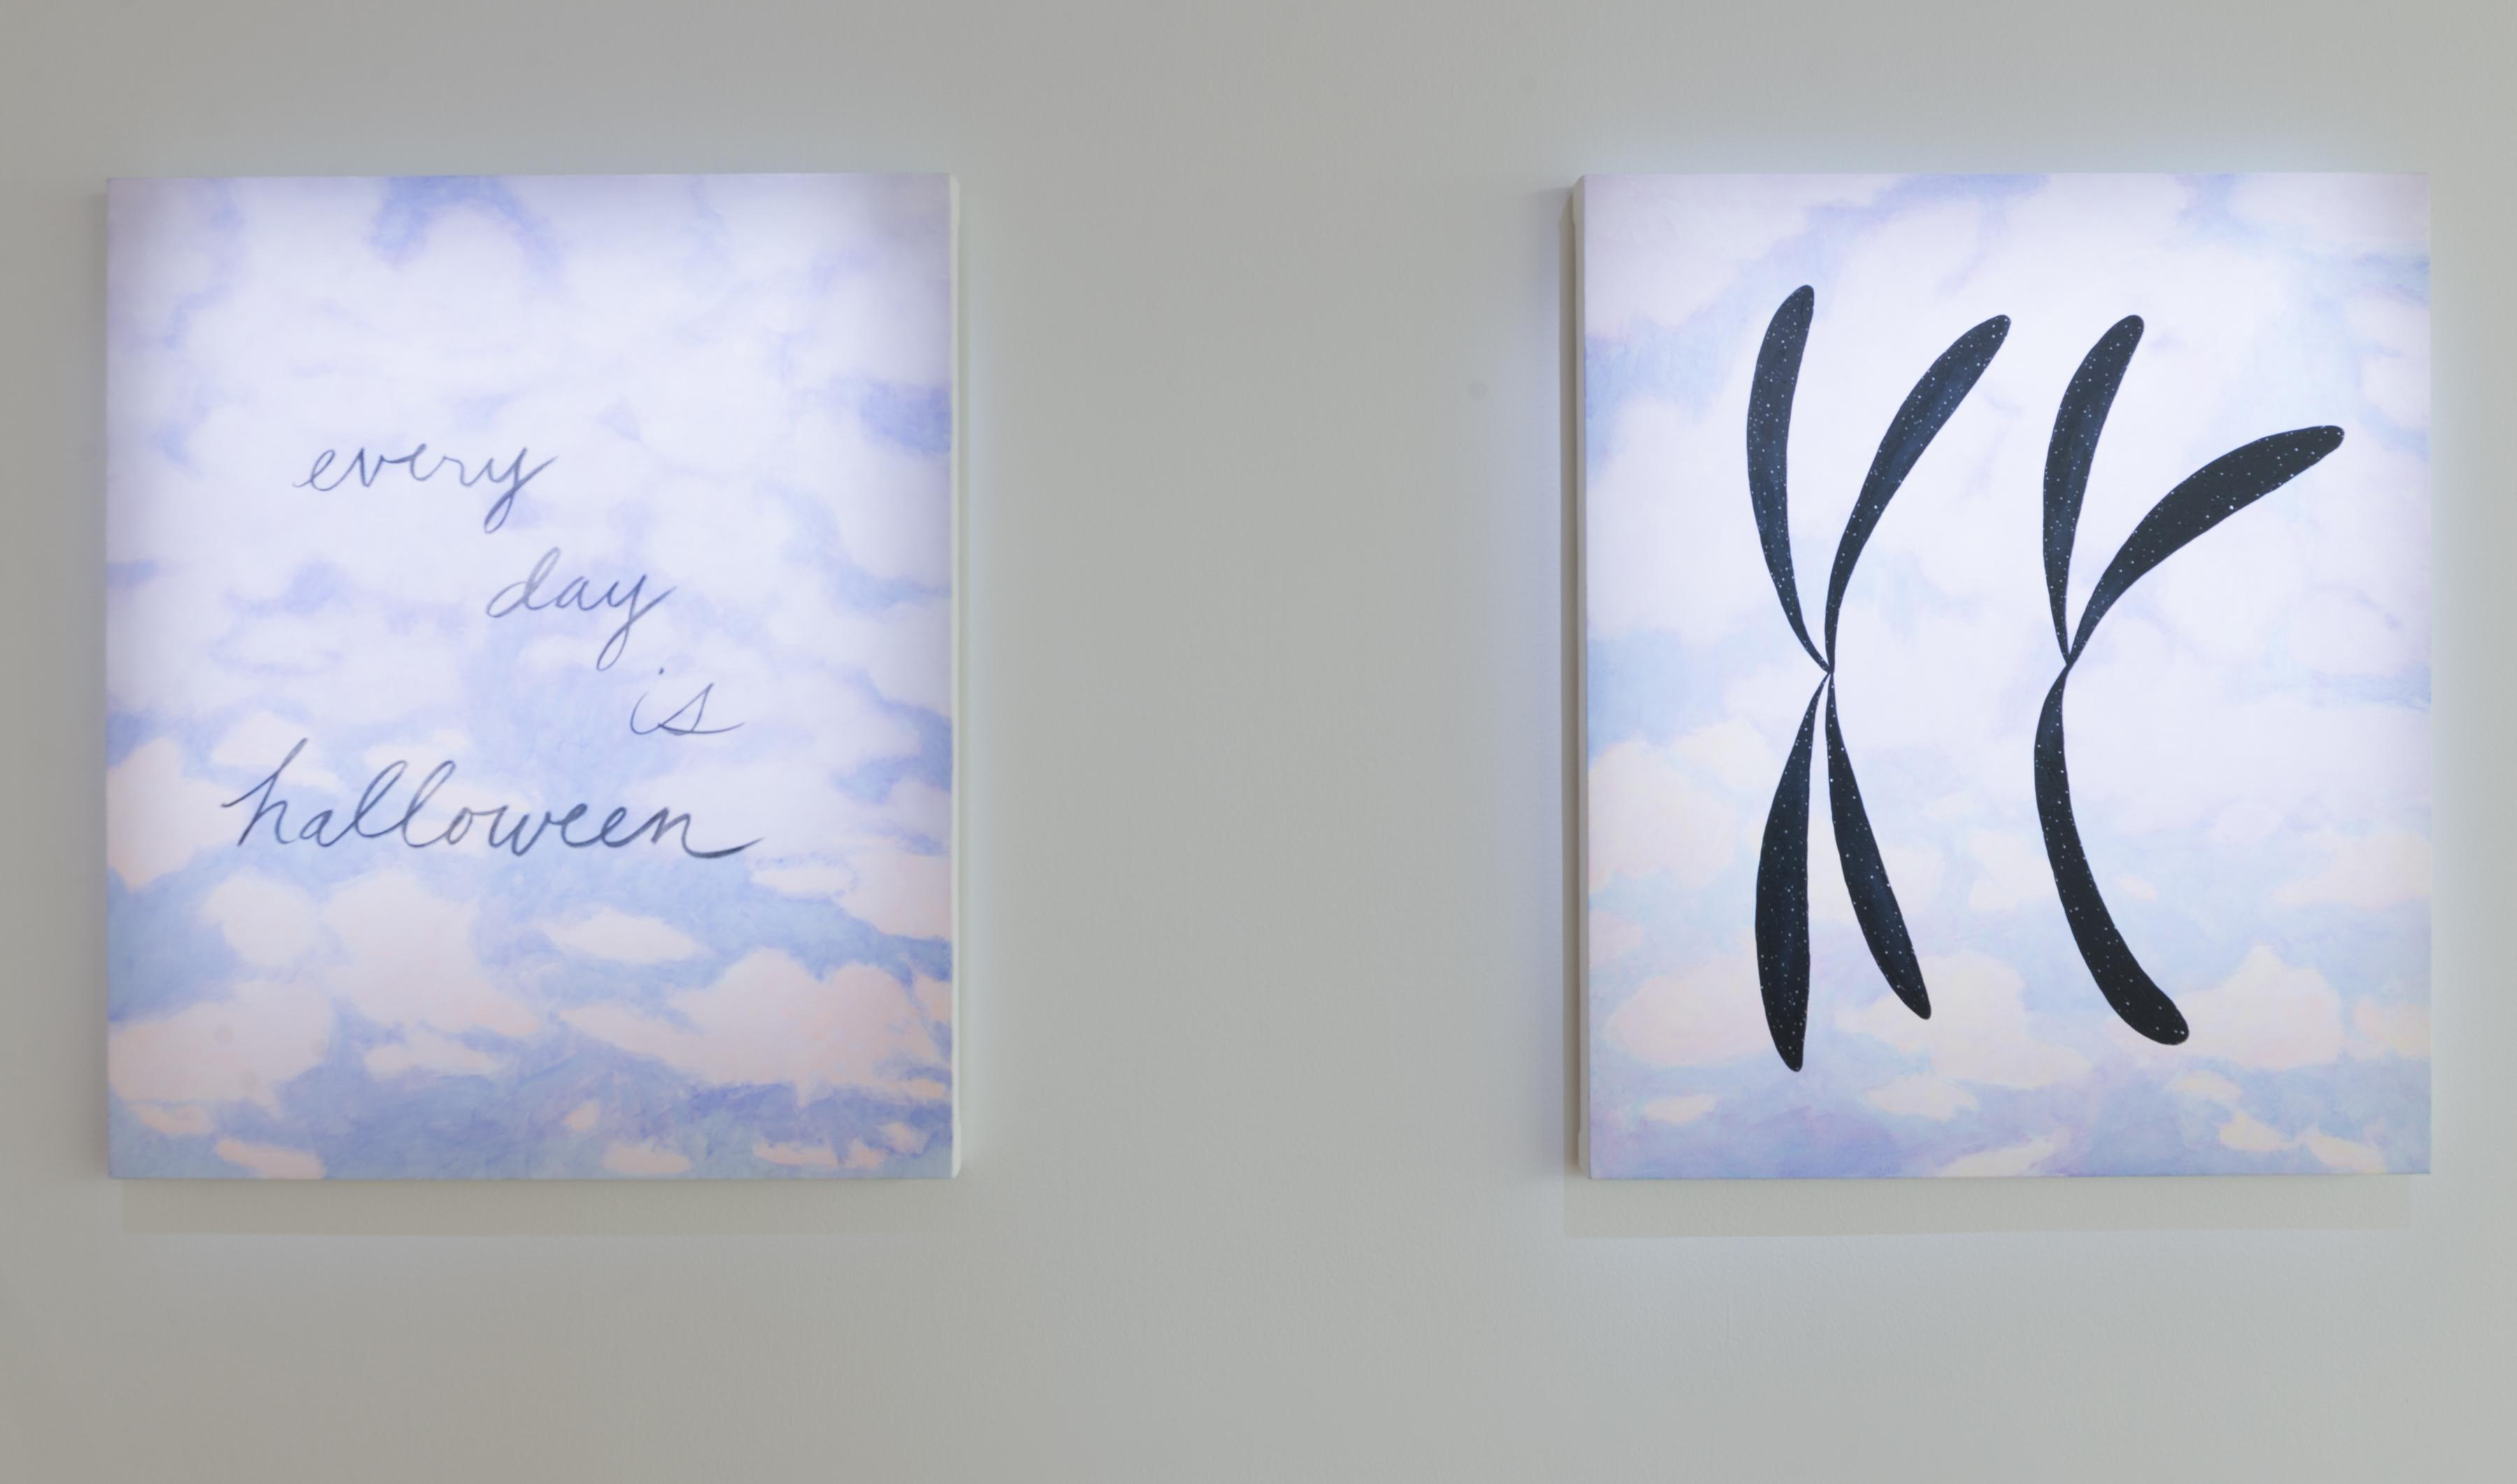 """Two paintings of idyllic cloudy blue skies hang side by side. One reads """"every day is halloween"""" in cursive, the other has two shapes like an """"X"""" and a """"Y,"""" like chromosomes."""